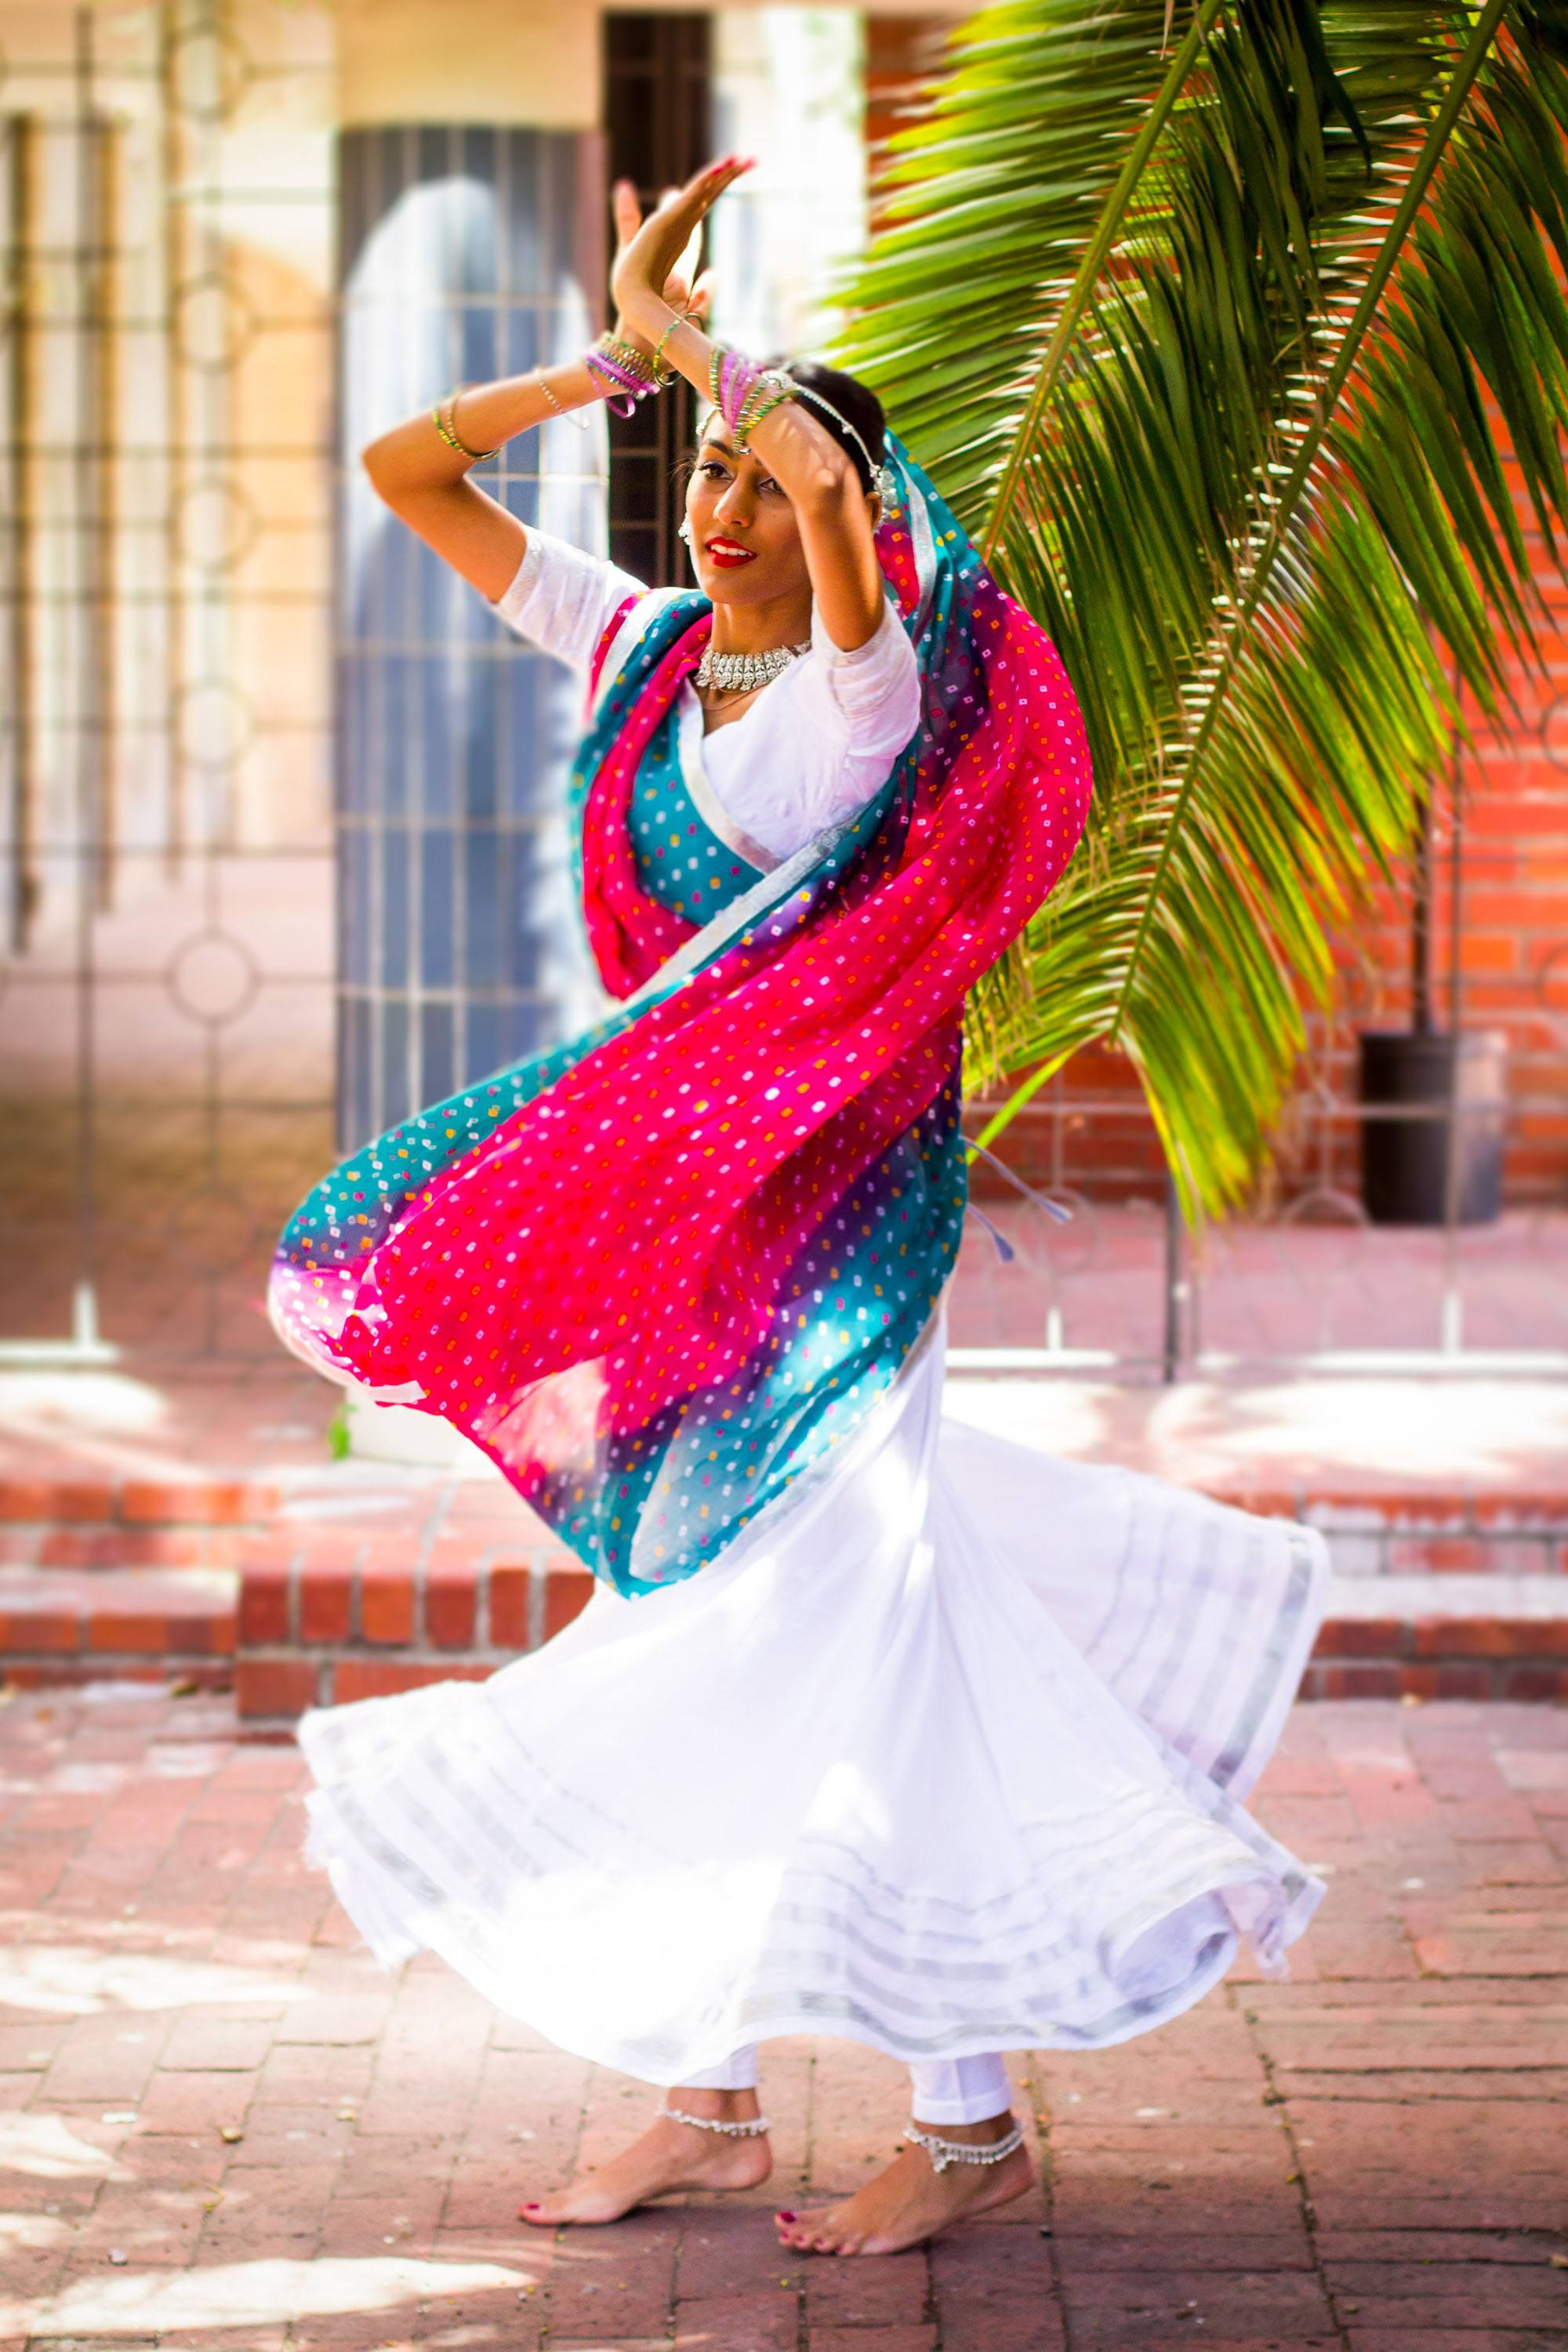 Caught in beautiful flow. Taare is a non-profit Bollywood dance performance troupe based in Cape Town. (Amanda Webb)